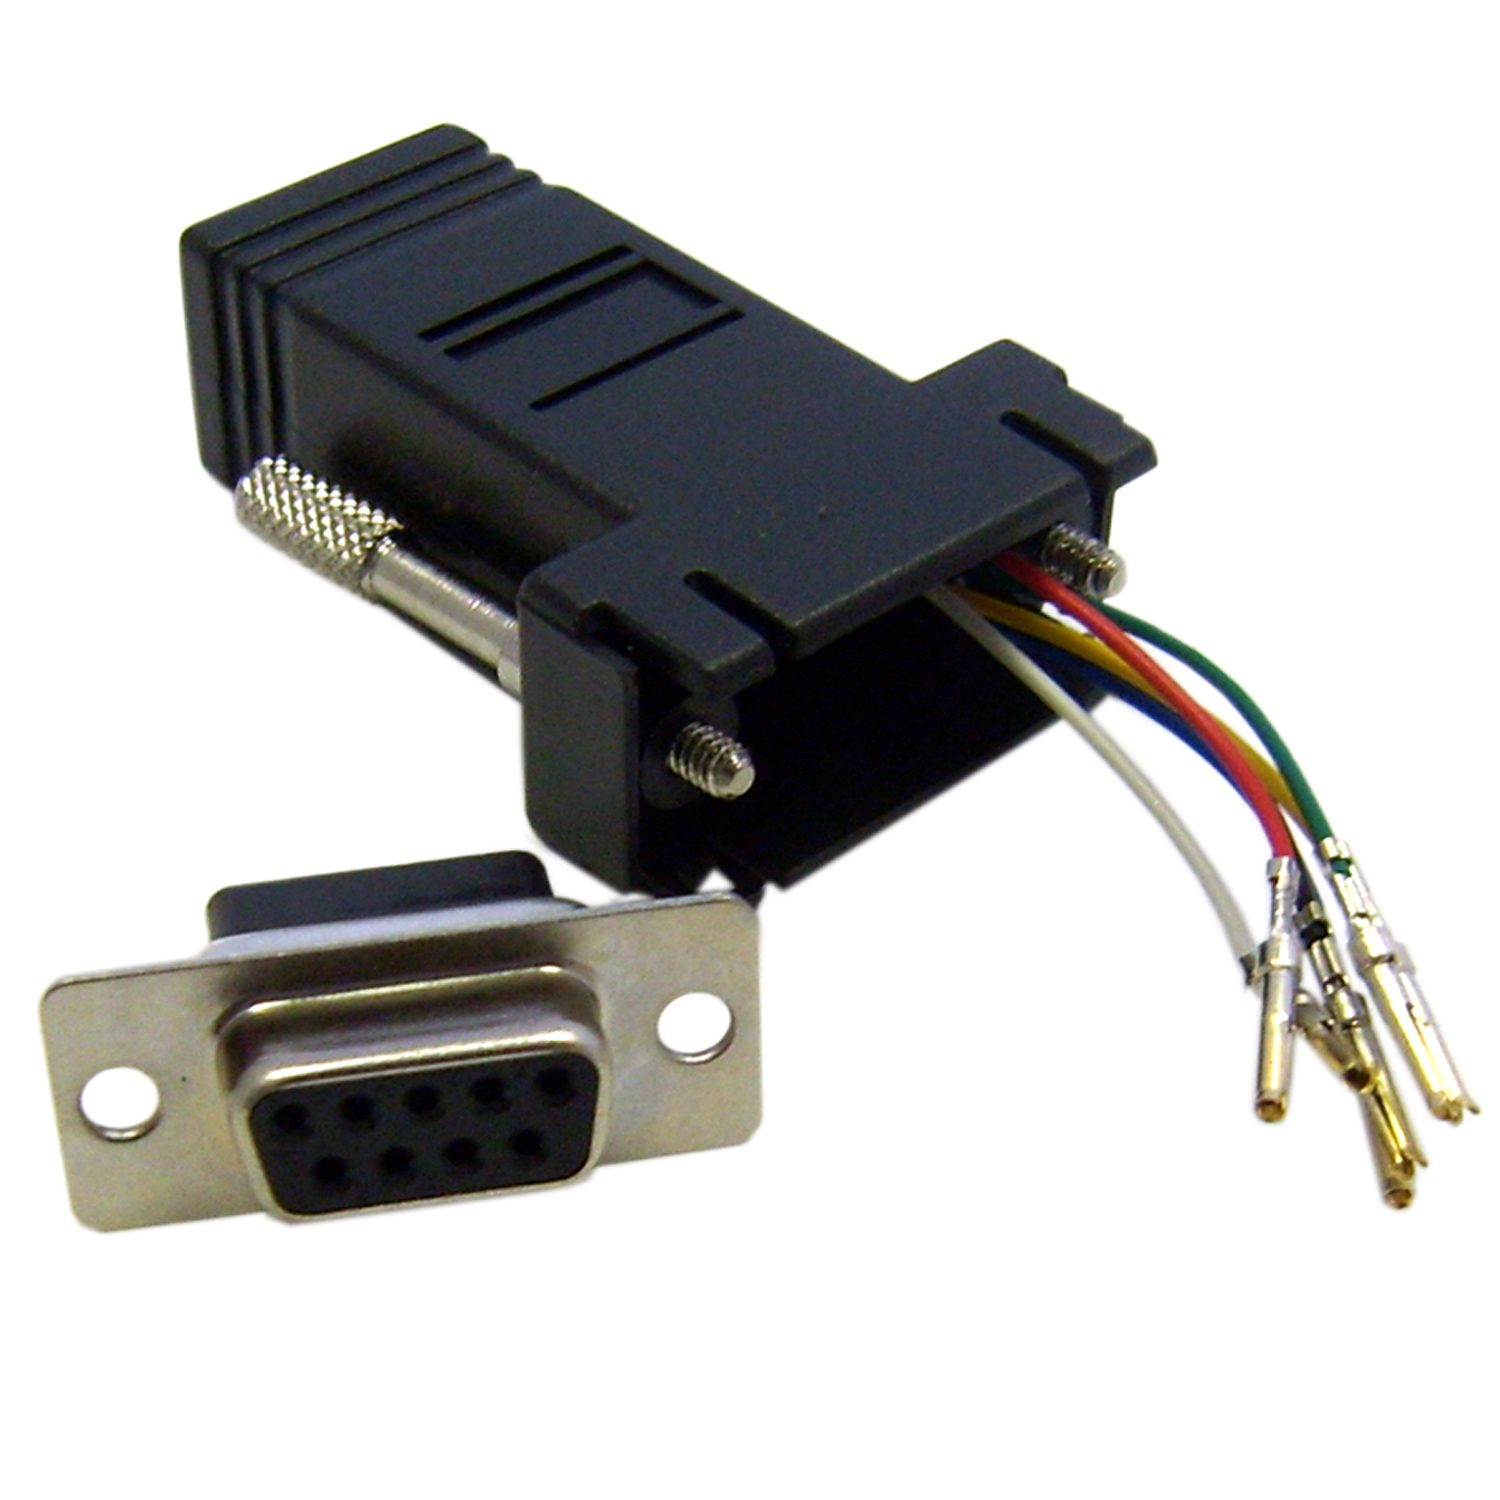 Rj12 Jack Wiring Diagram Library Rj45 Db9 Cisco Console Cable To Modular Adapter Black Female